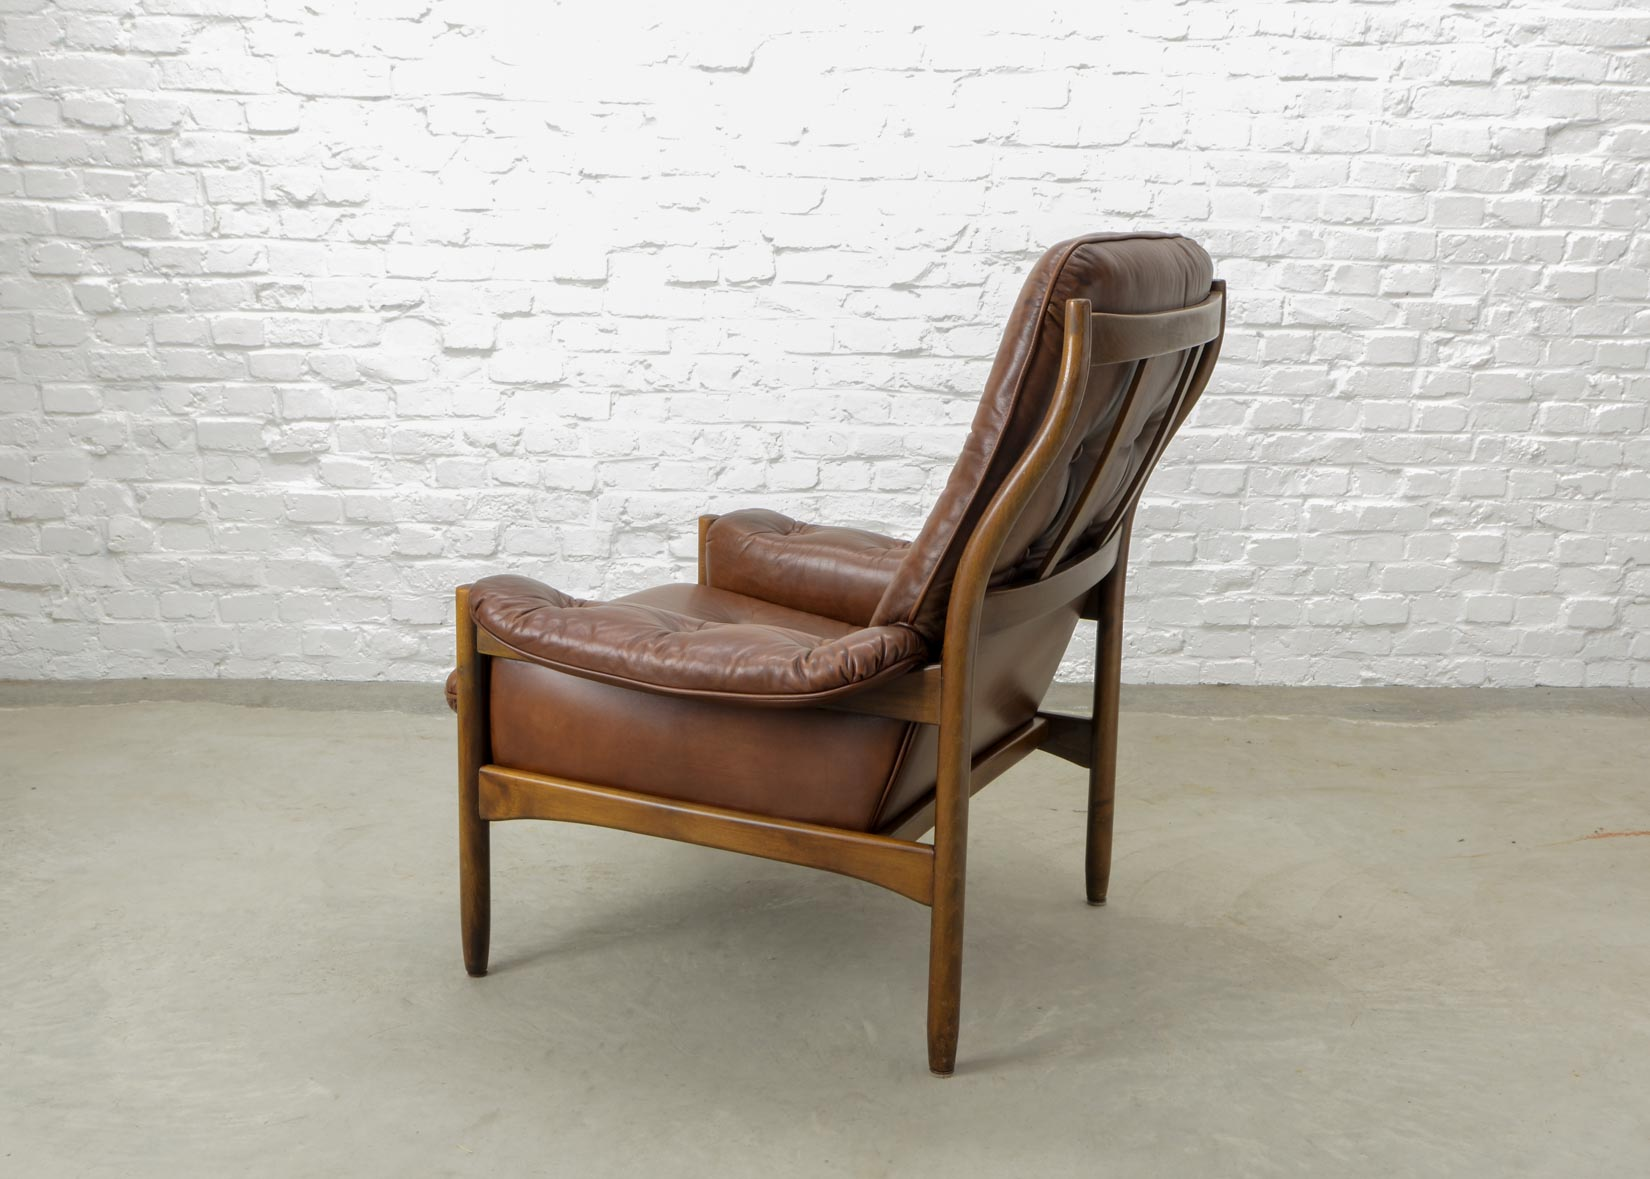 Möbel Scandinavian Design Mid Century Scandinavian Design Chestnut Leather Lounge Chair By G